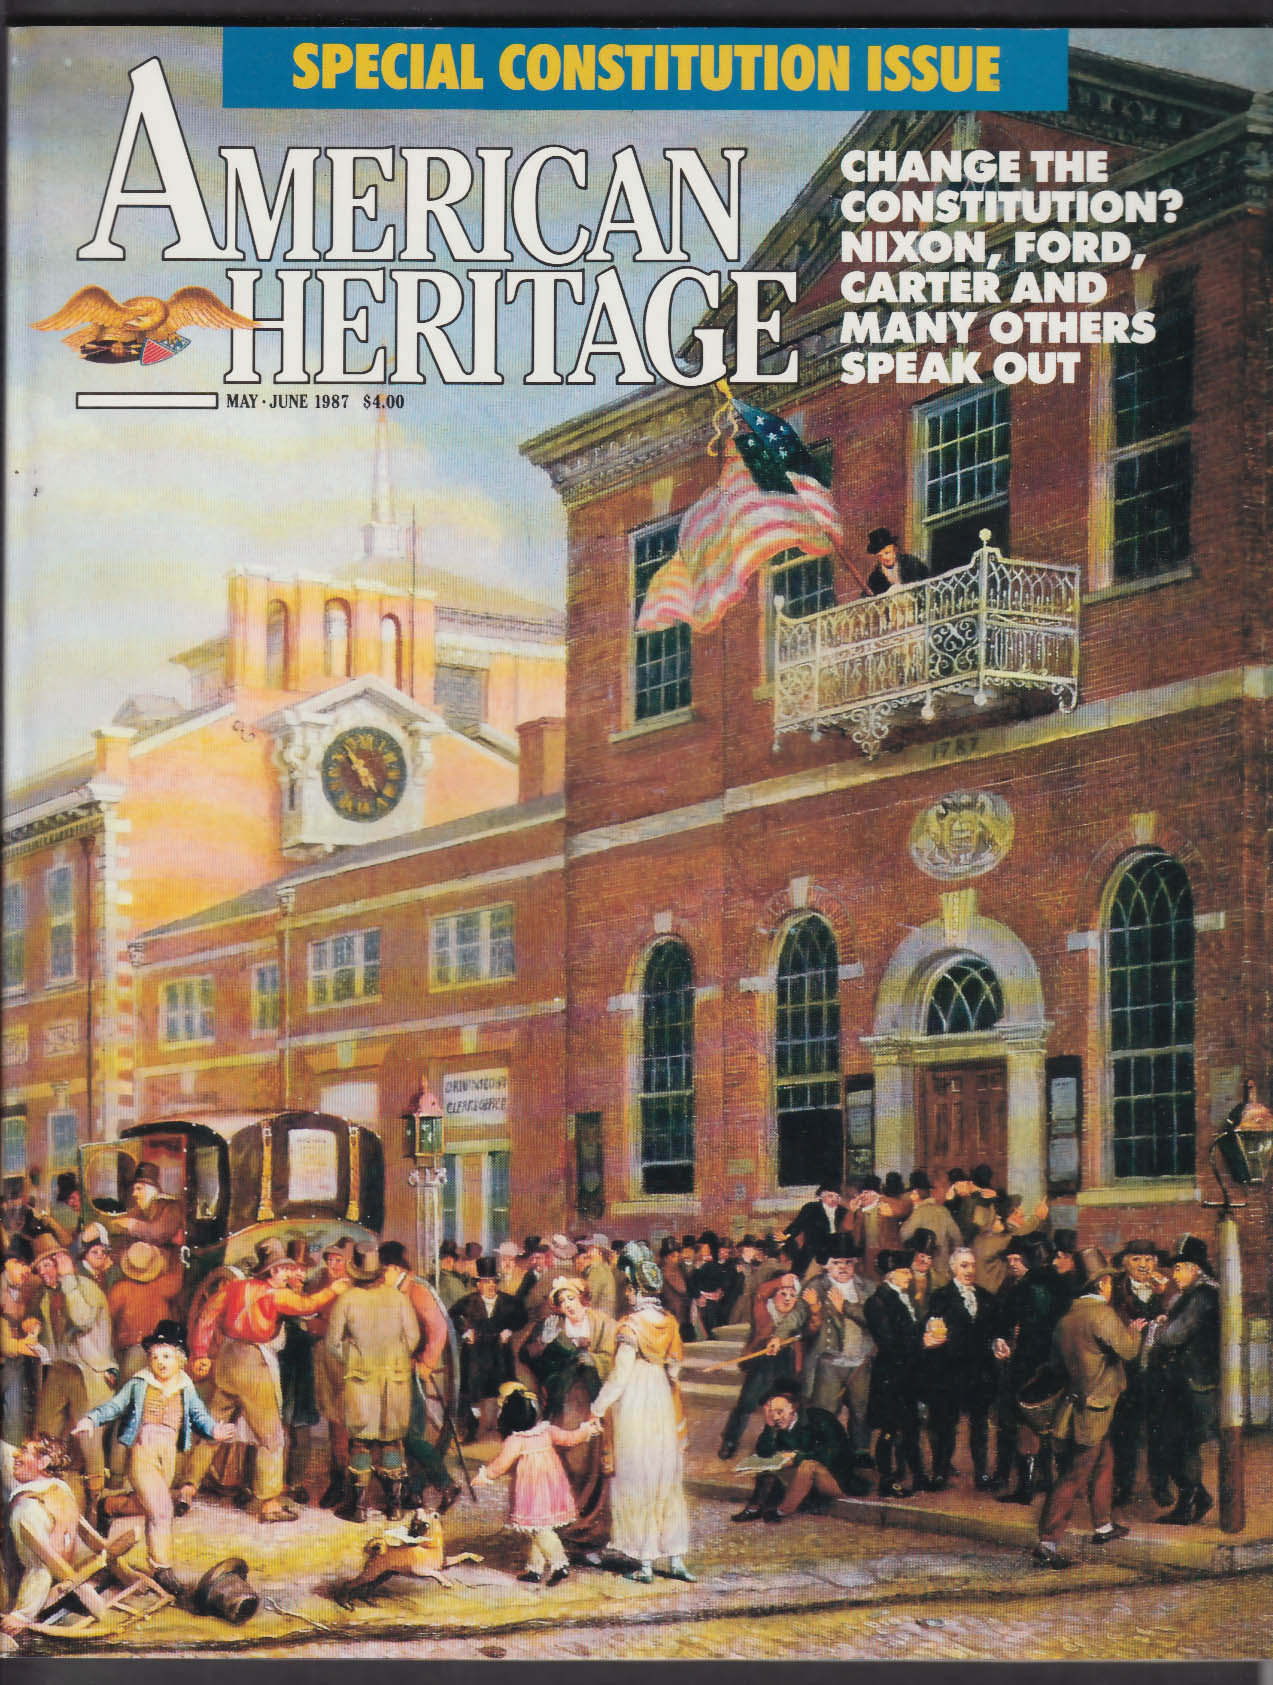 AMERICAN HERITAGE Special Constitution Issue Eli Whitney Andrew Wyeth 5-6 1987